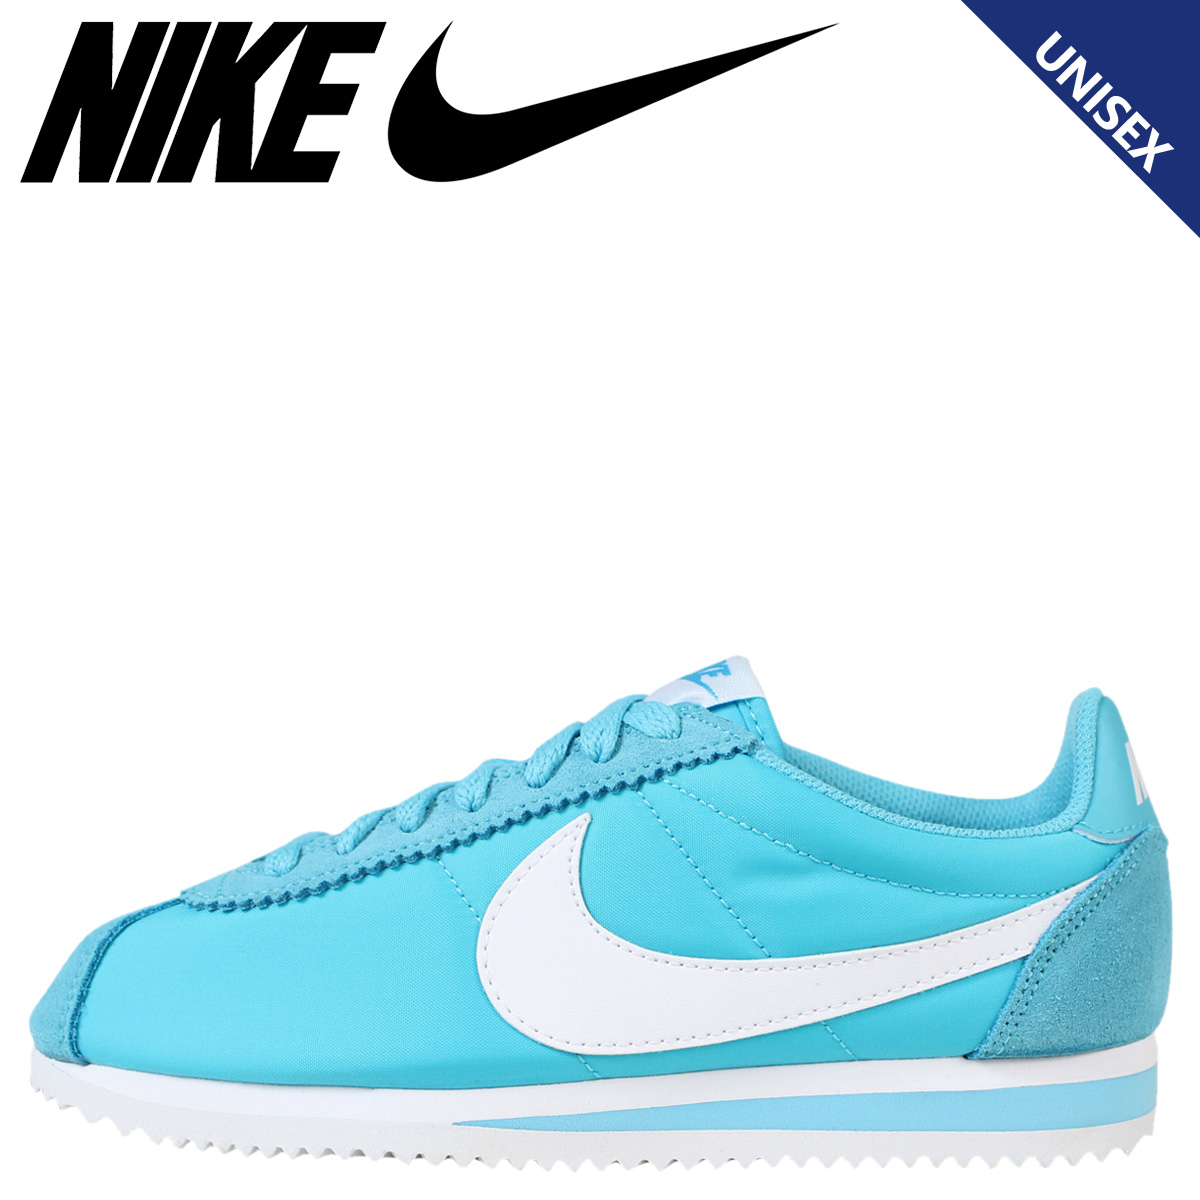 brand new 849be d30ab NIKE Nike Cortez sneakers Womens CLASSIC CORTEZ NYLON 749864-410 men s  shoes blue